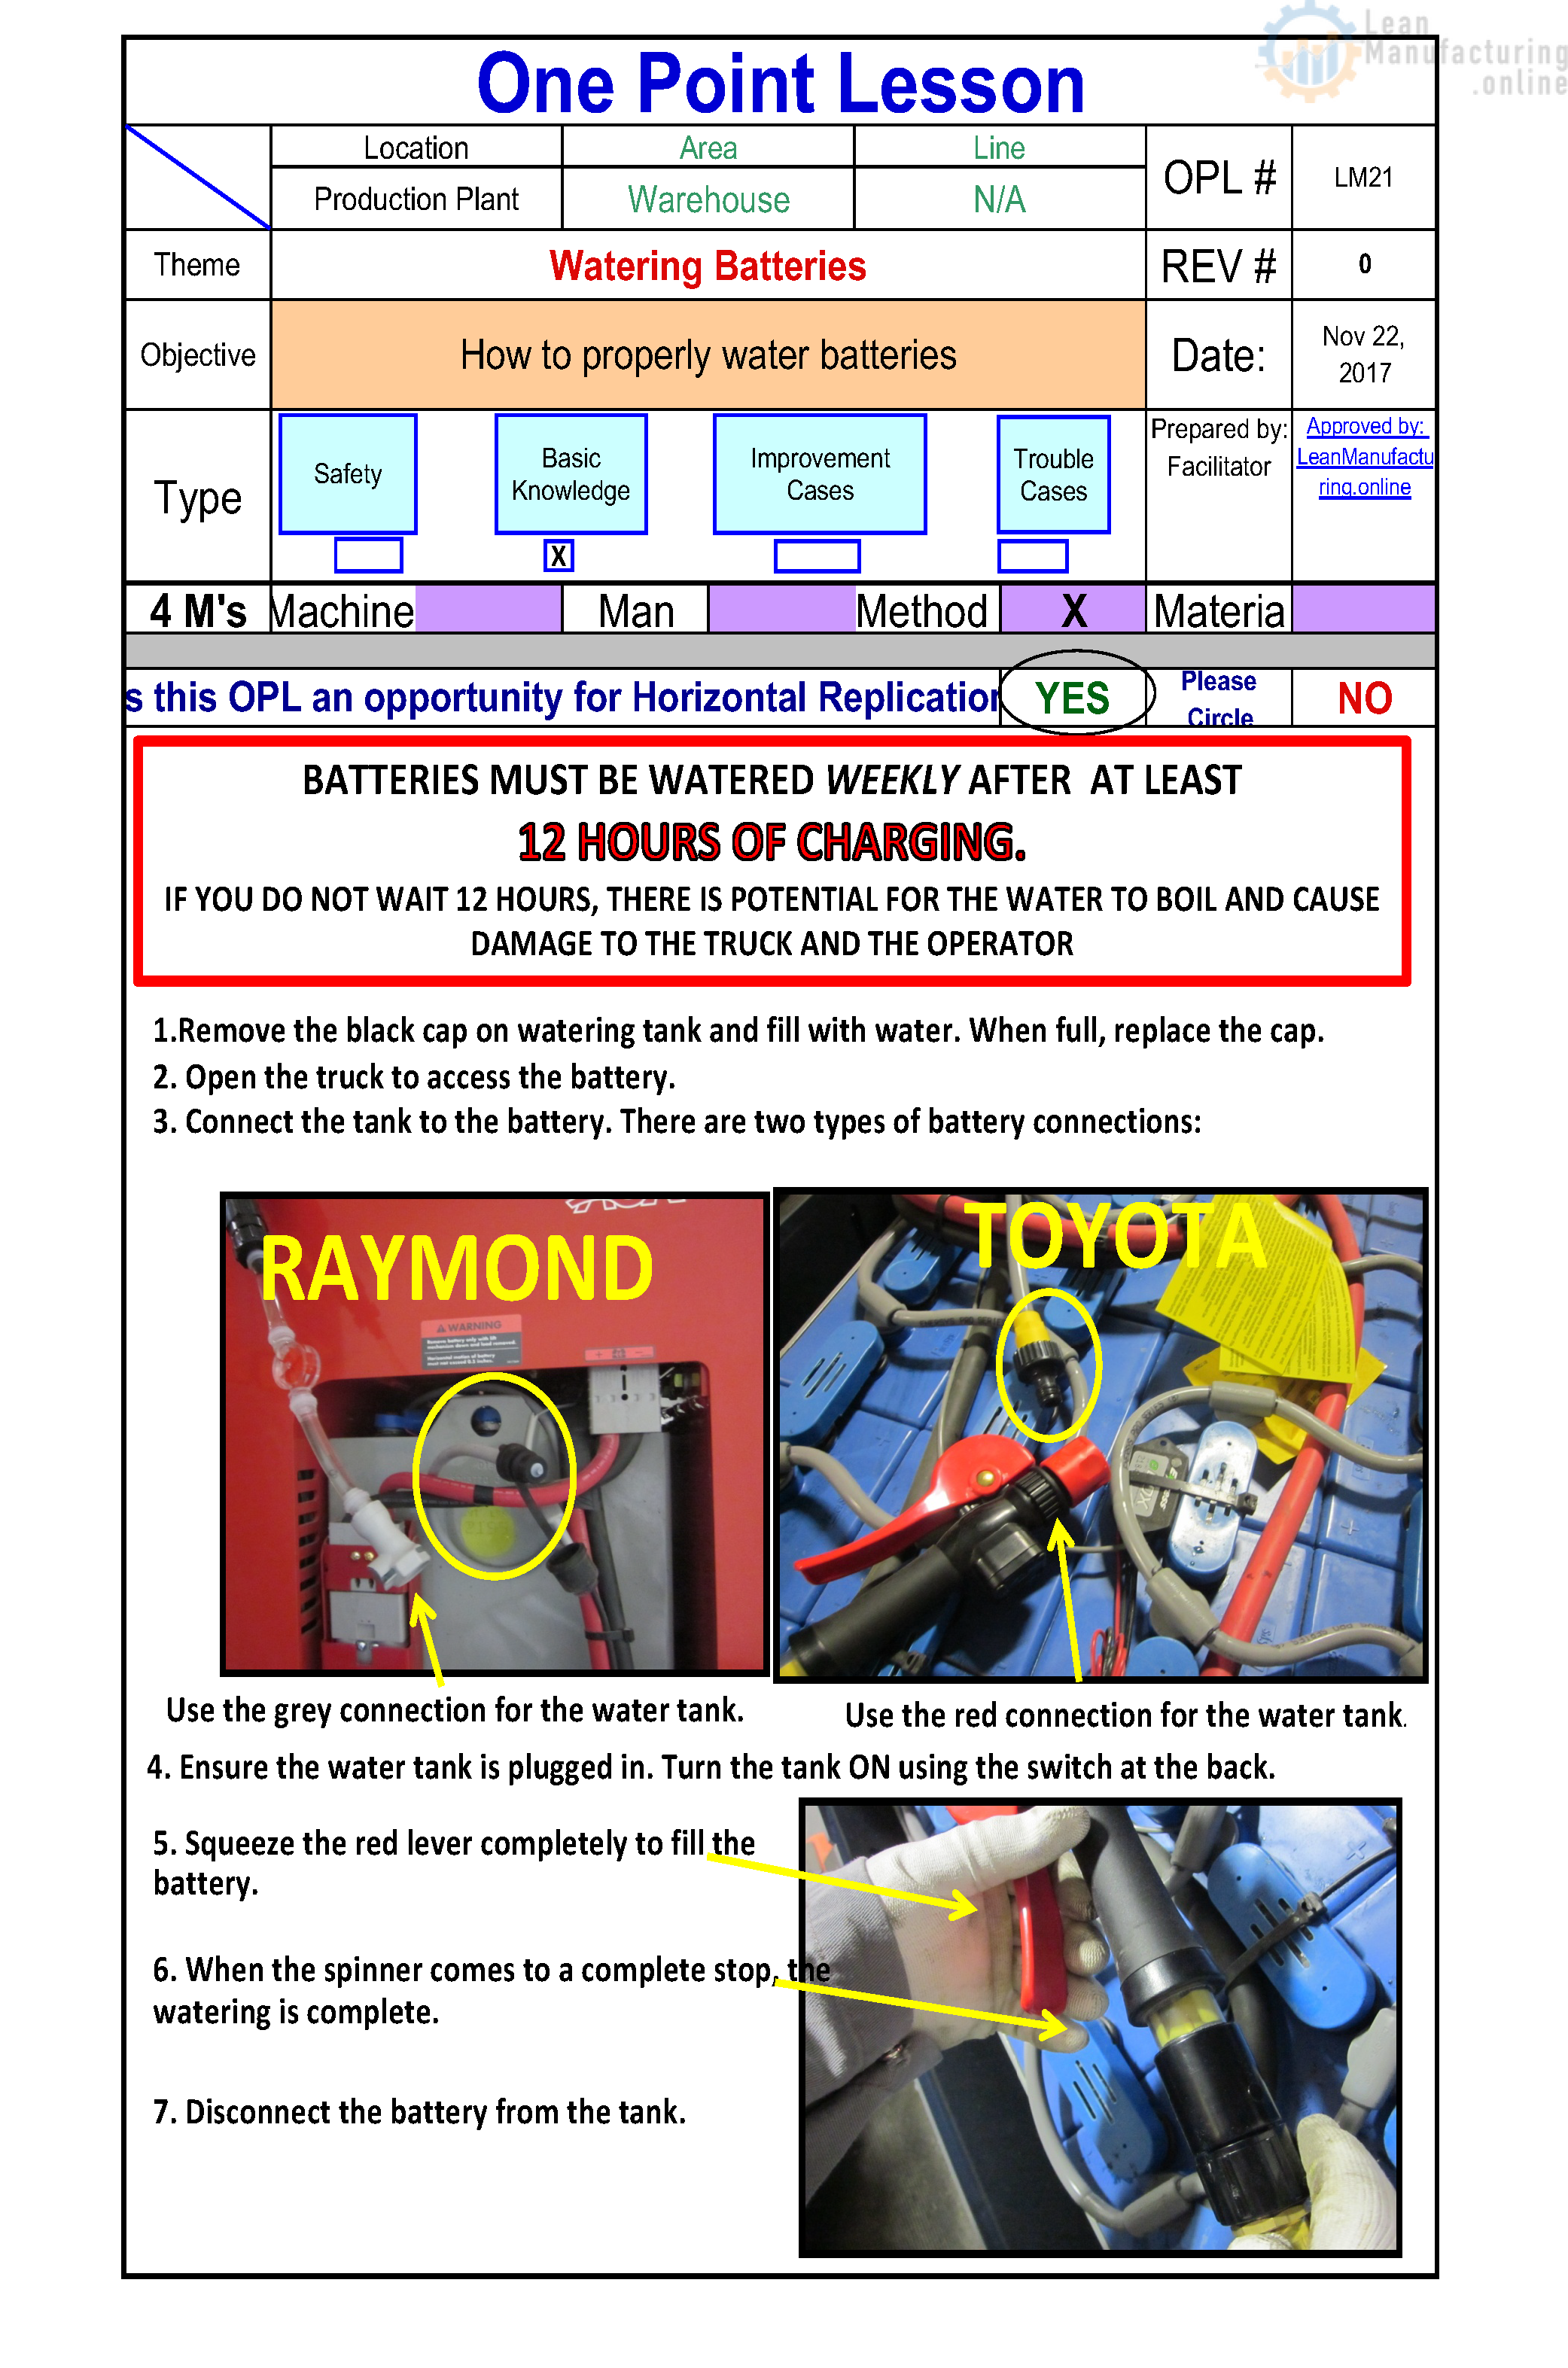 one point lesson  u2013 how to water forklift batteries  u2013 continuously improving manufacturing